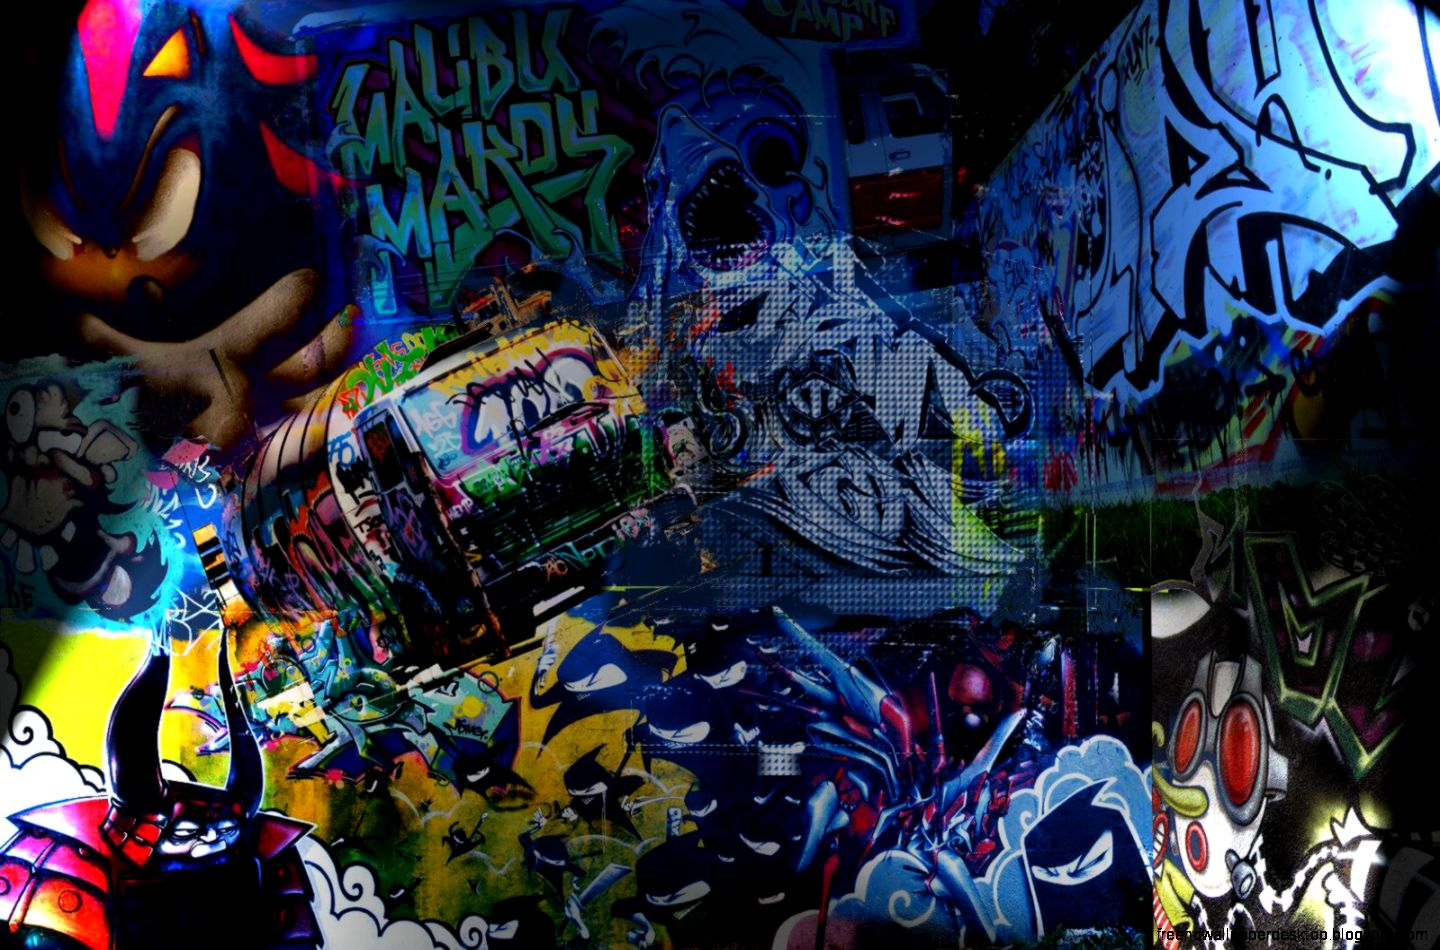 OJ44 Abstract Graffiti Wallpaper   Widescreen Wallpapers 1440x950